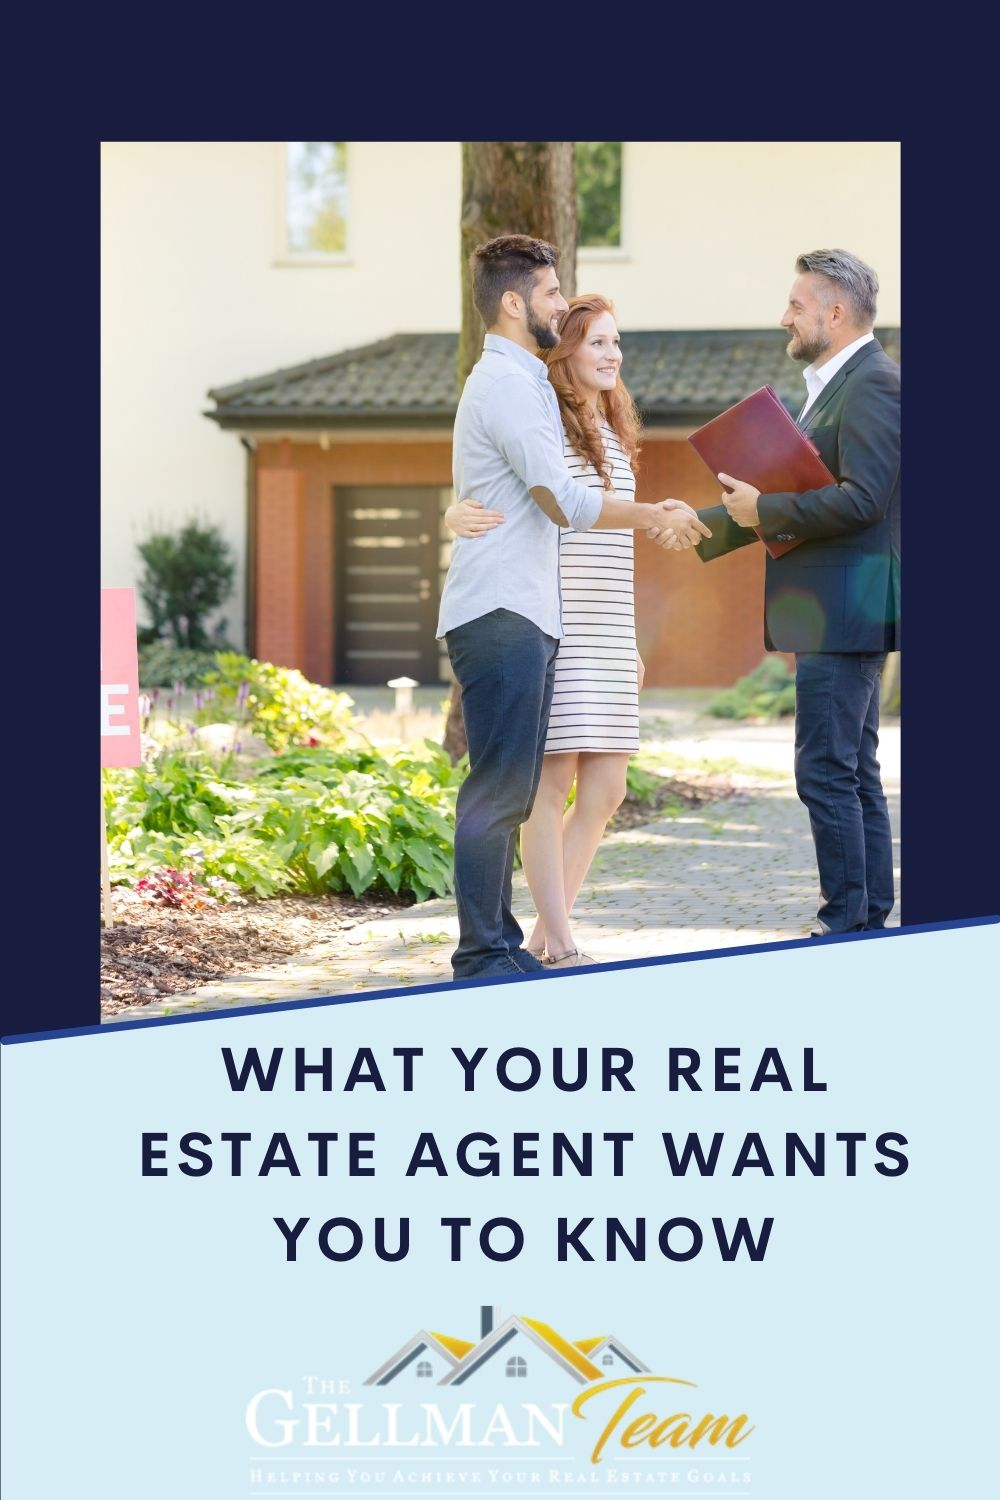 What Your Real Estate Agent Wants You To Know